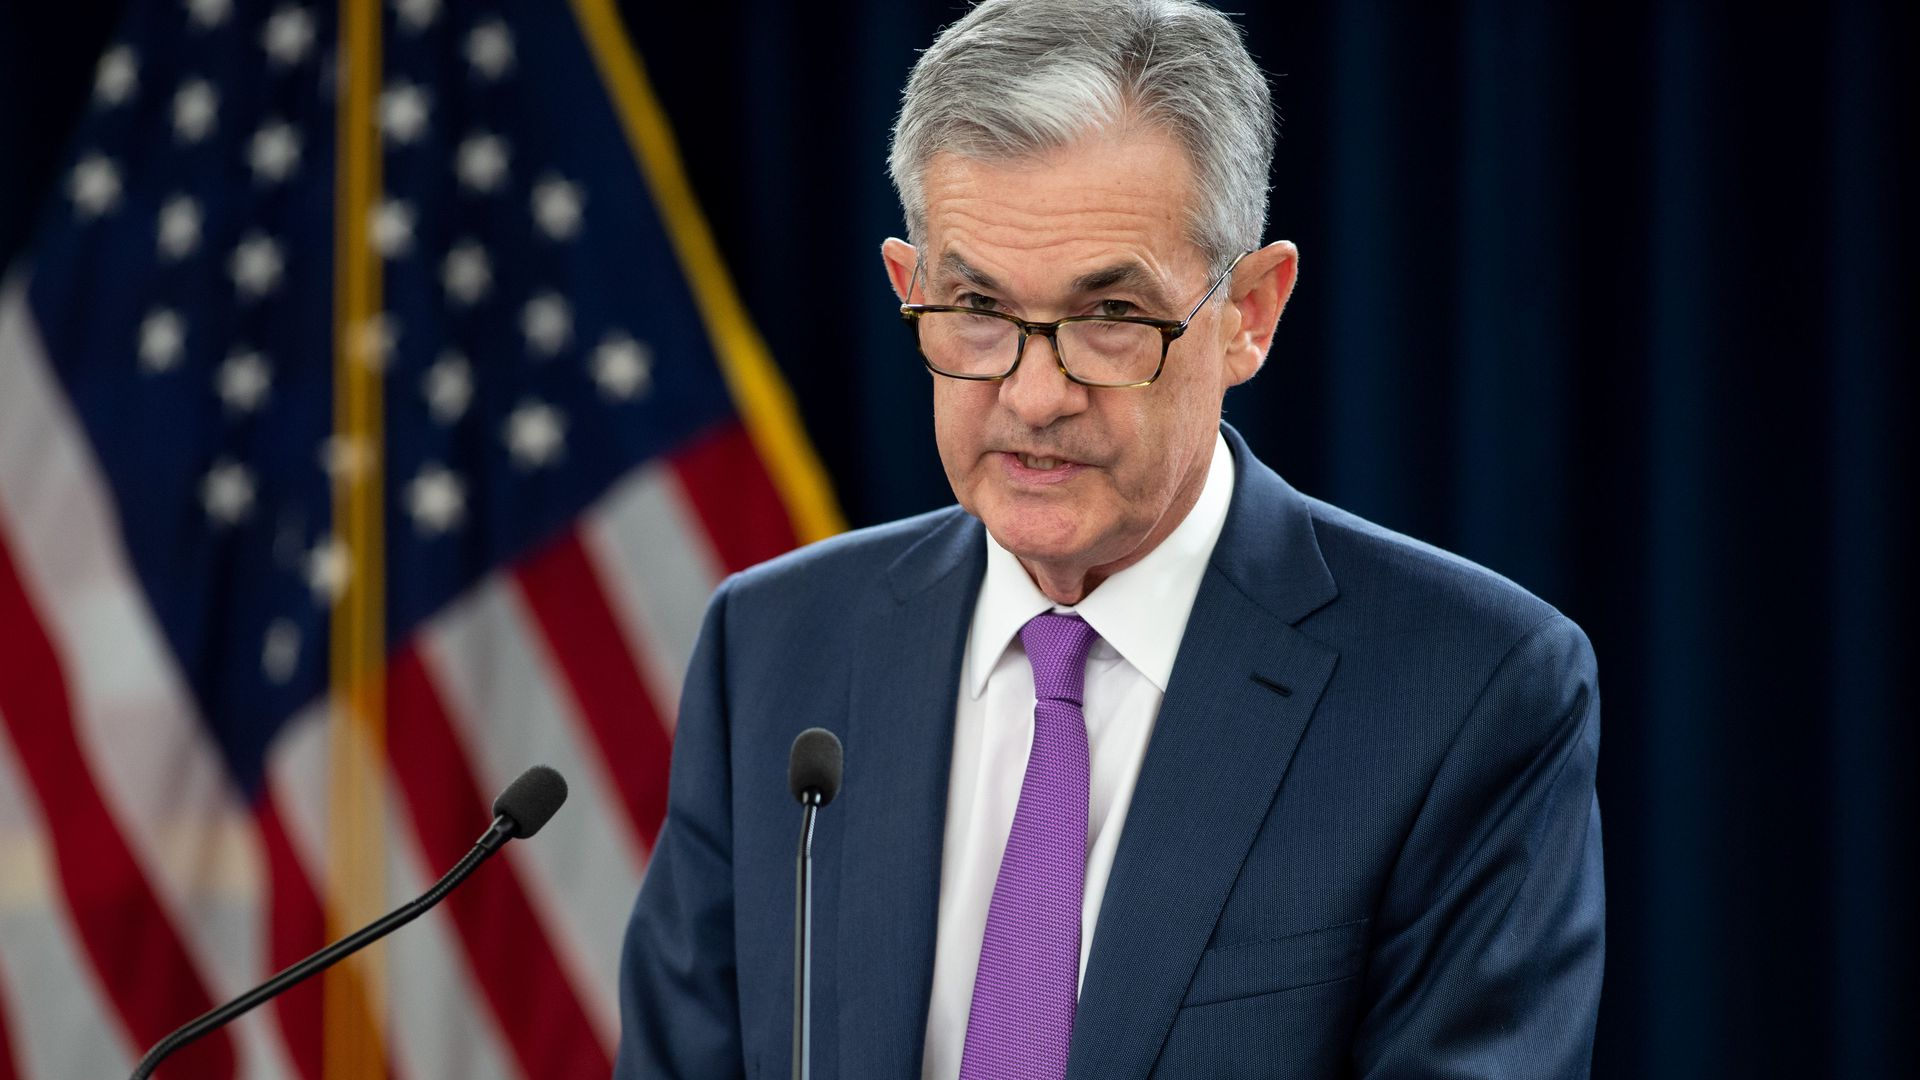 Federal Reserve Chairman Jerome Powell standing at a podium at a press conference.